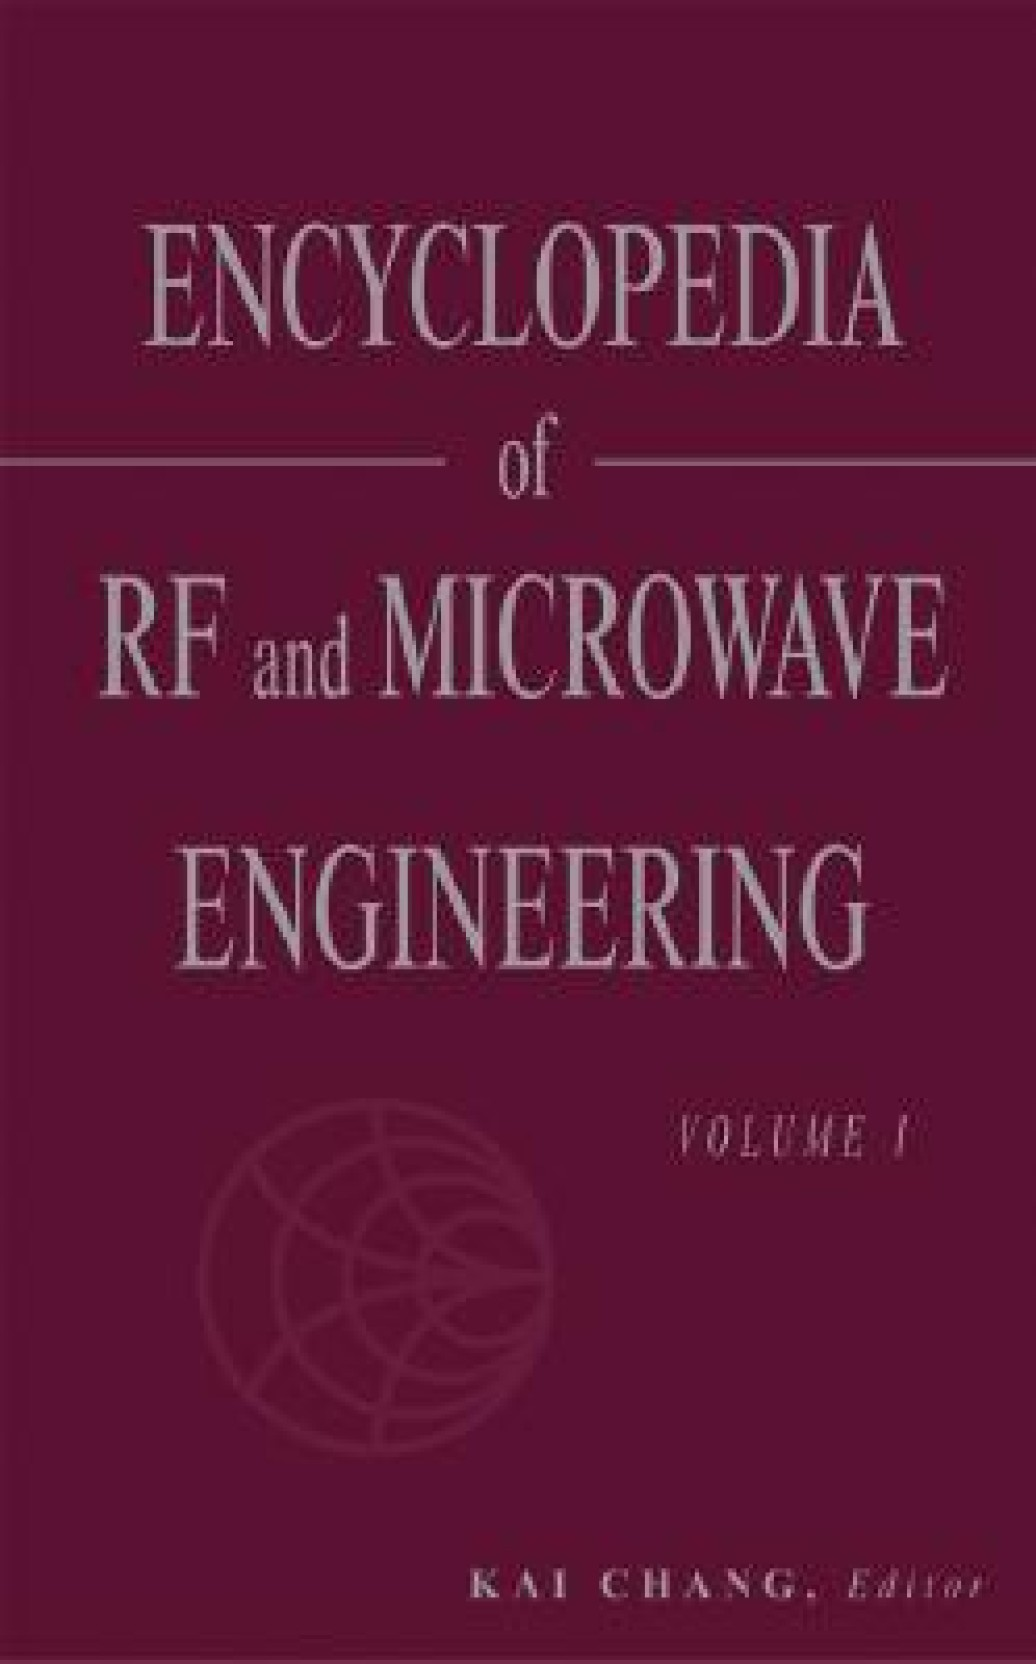 Encyclopedia of RF and Microwave Engineering, 6-Volume Set HRD Edition. ADD  TO CART